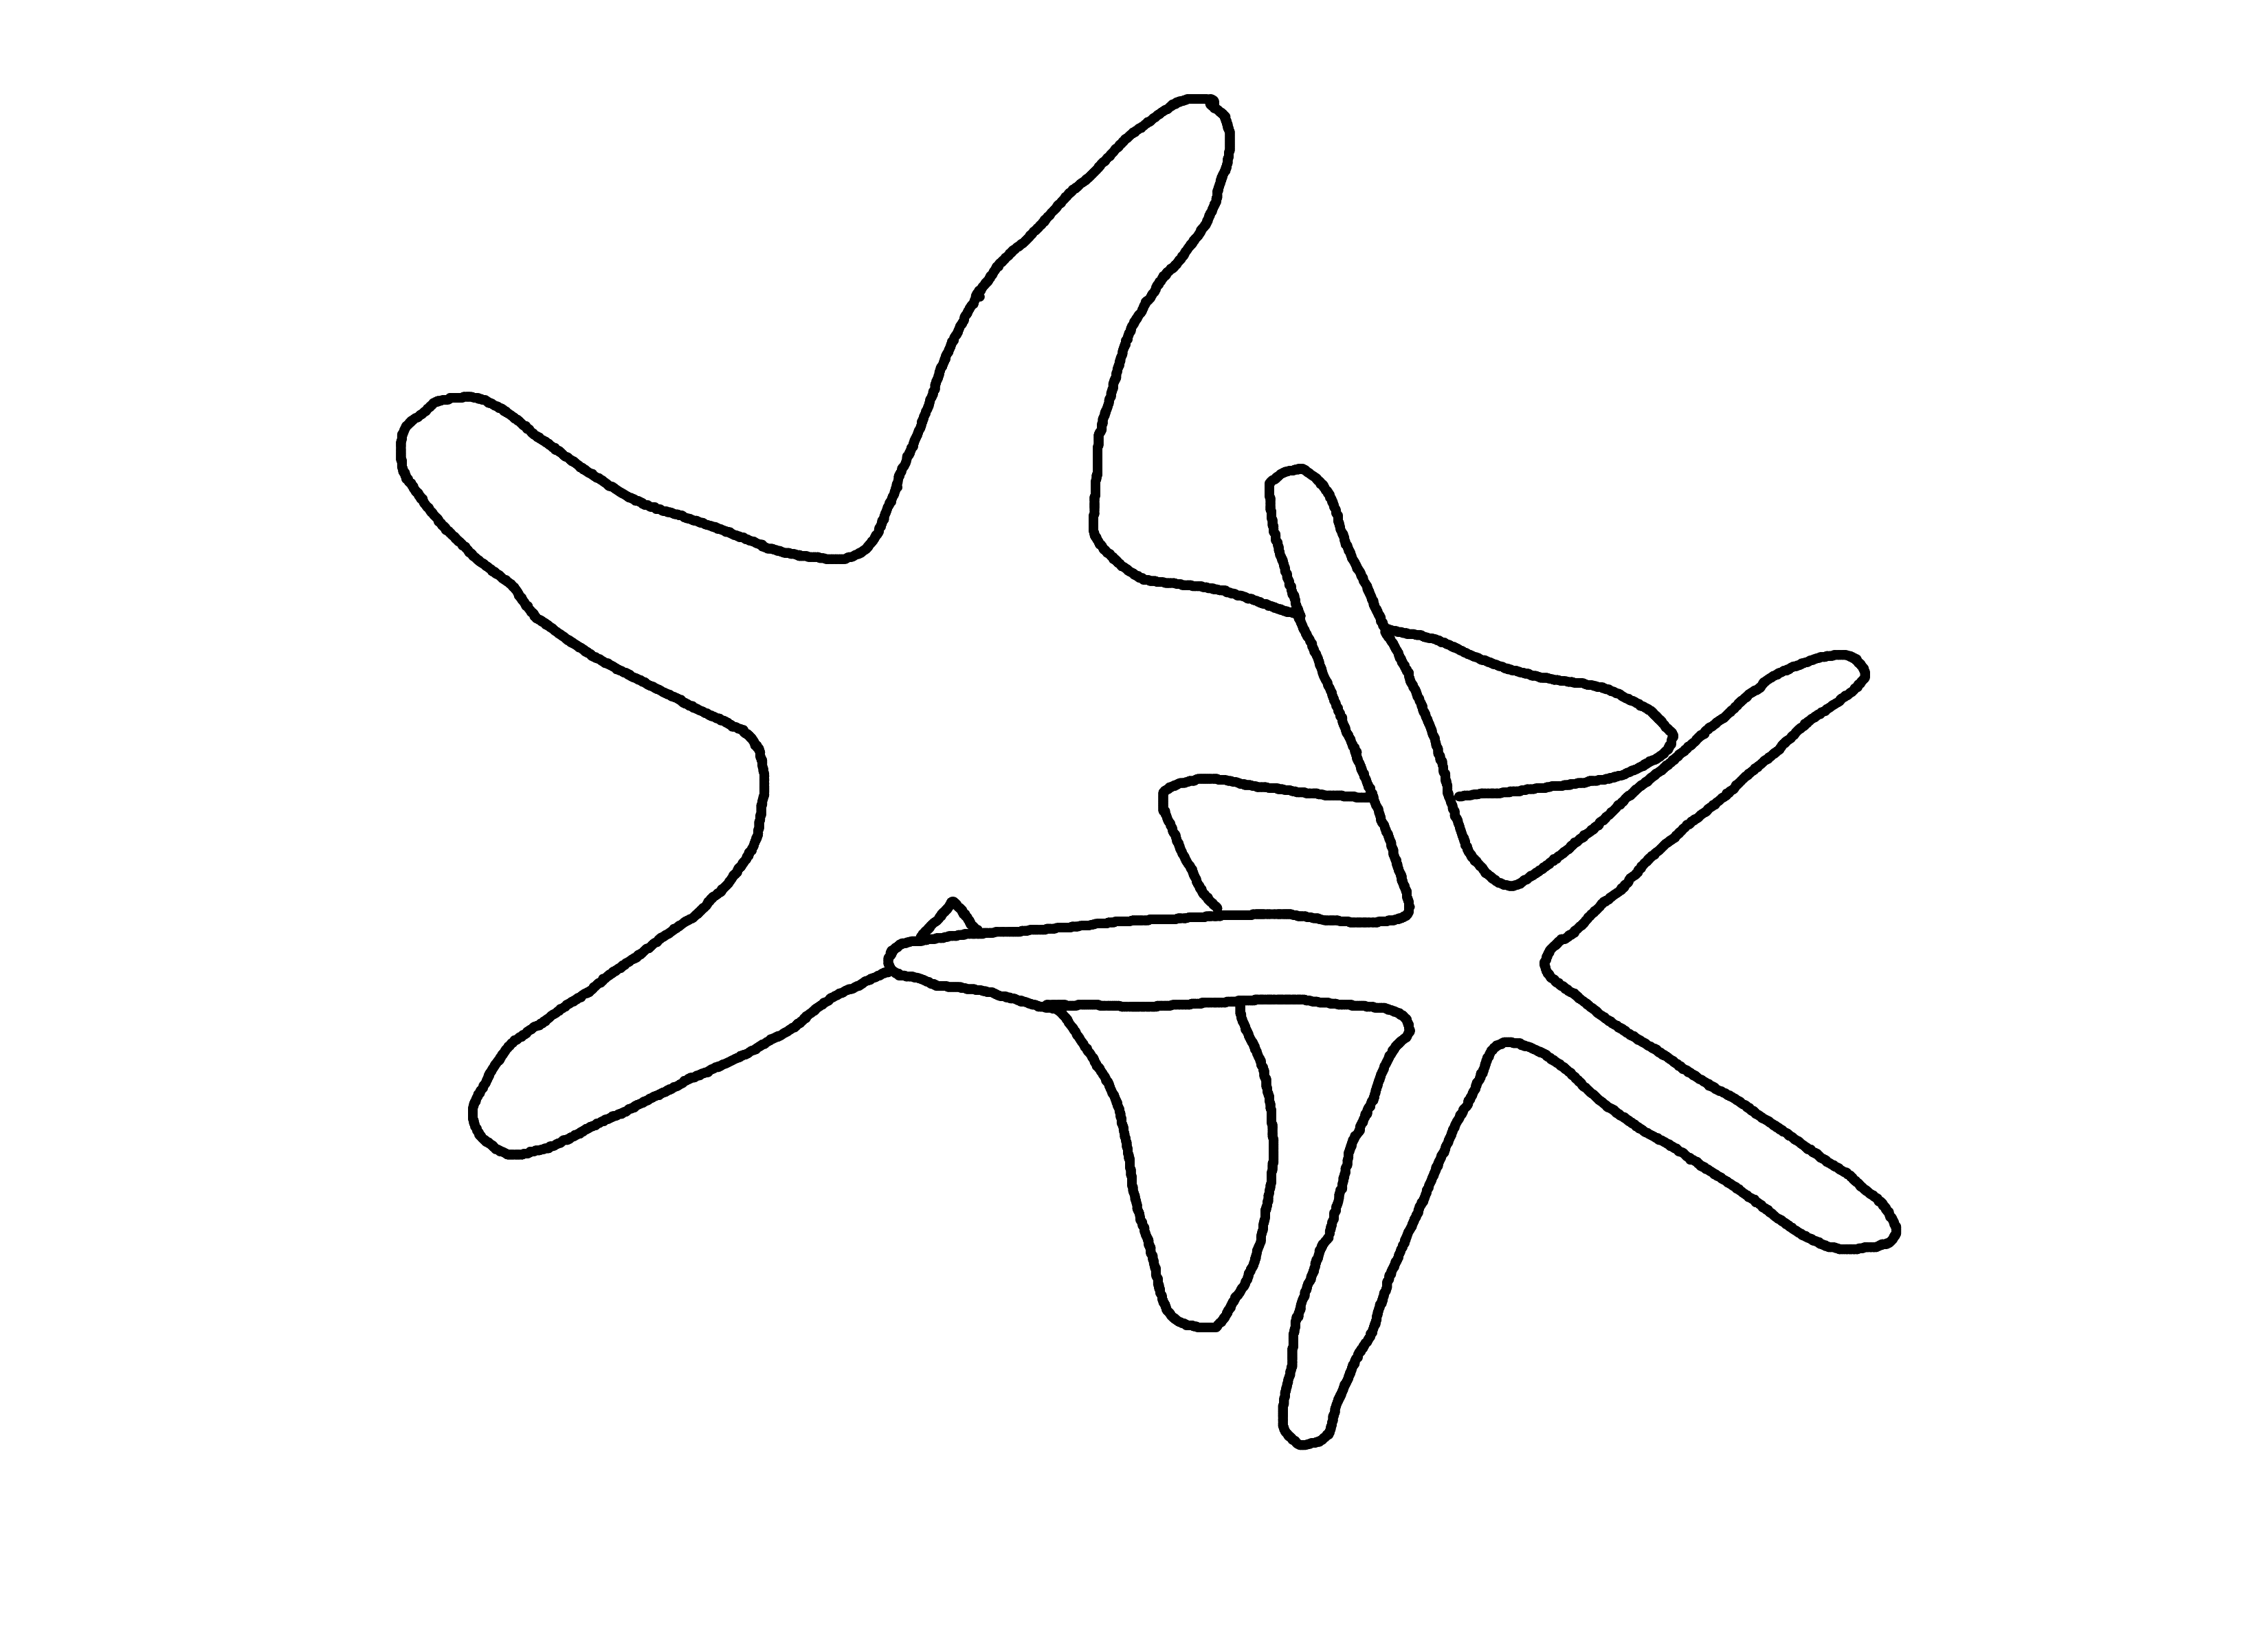 Starfish Outline Png Starfishes Outline